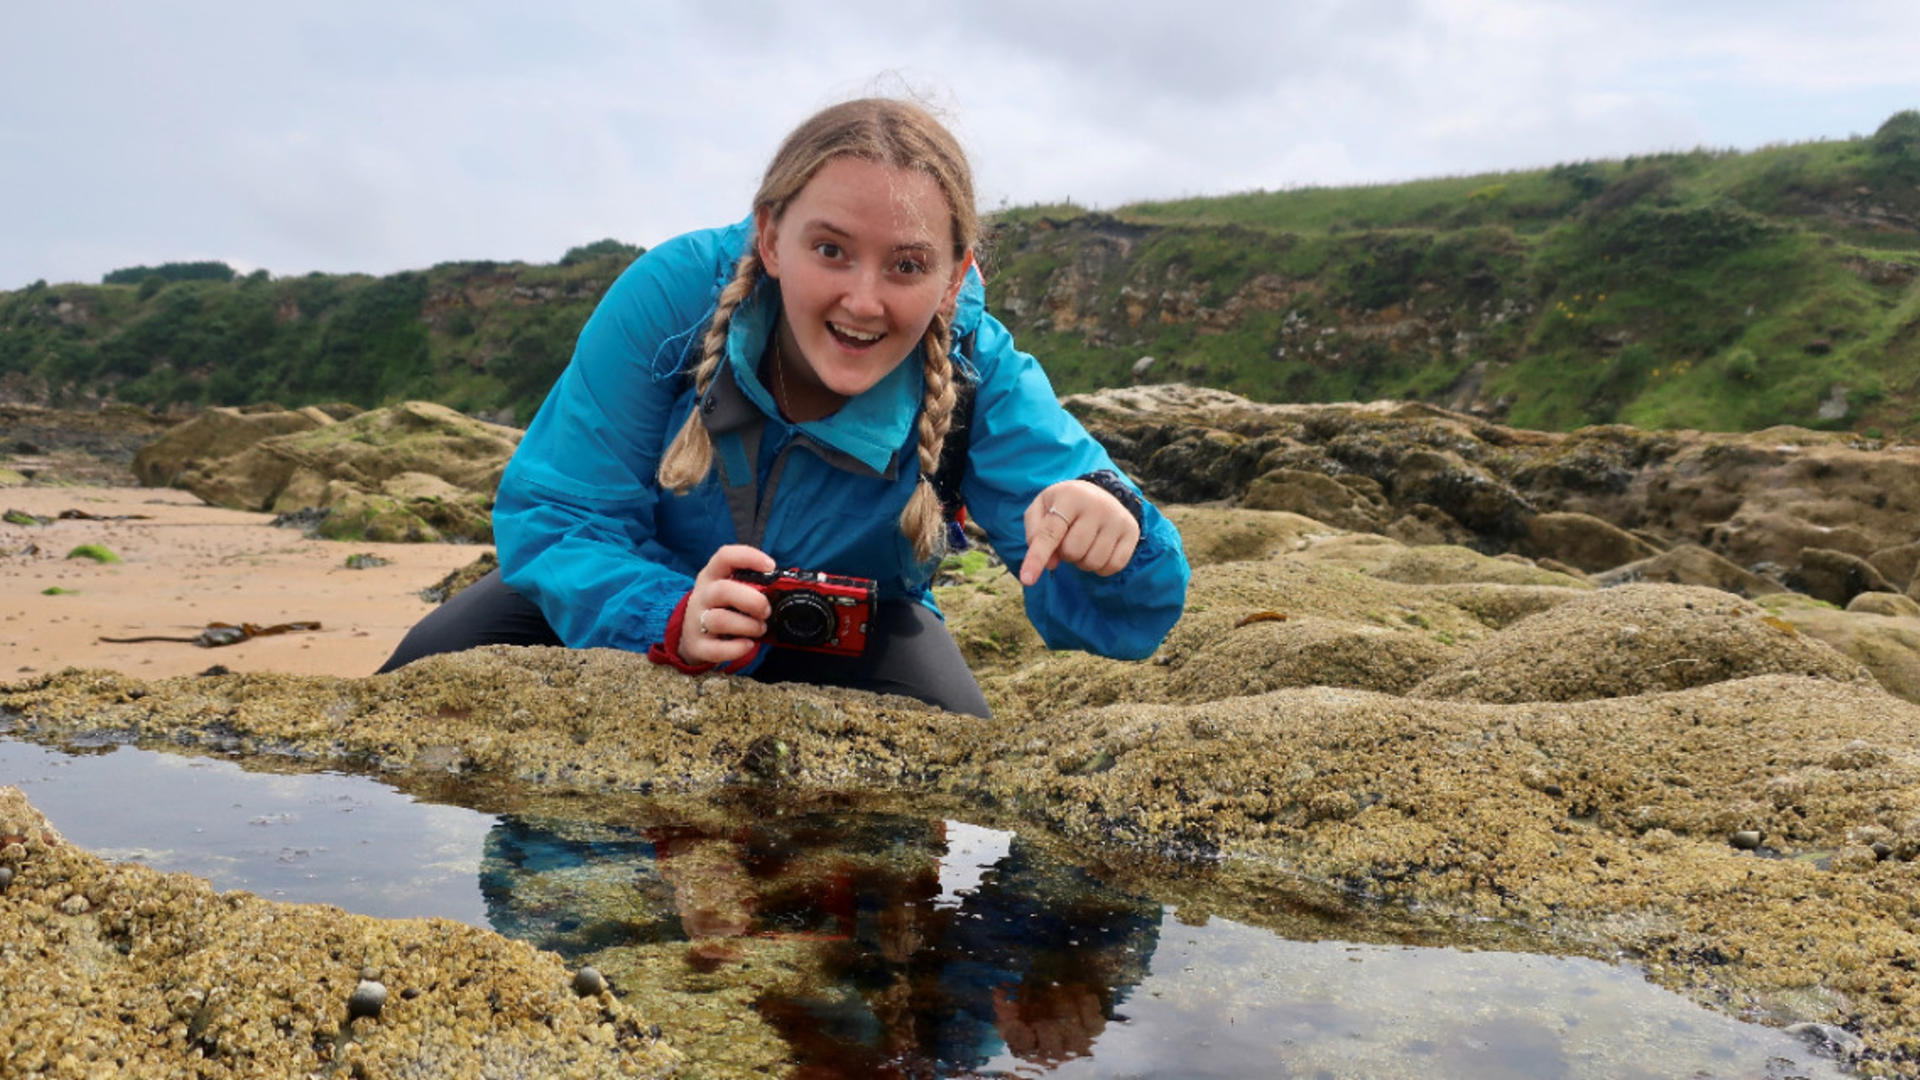 Elizabeth Mills crouching on rocks, pointing camera into a rockpool